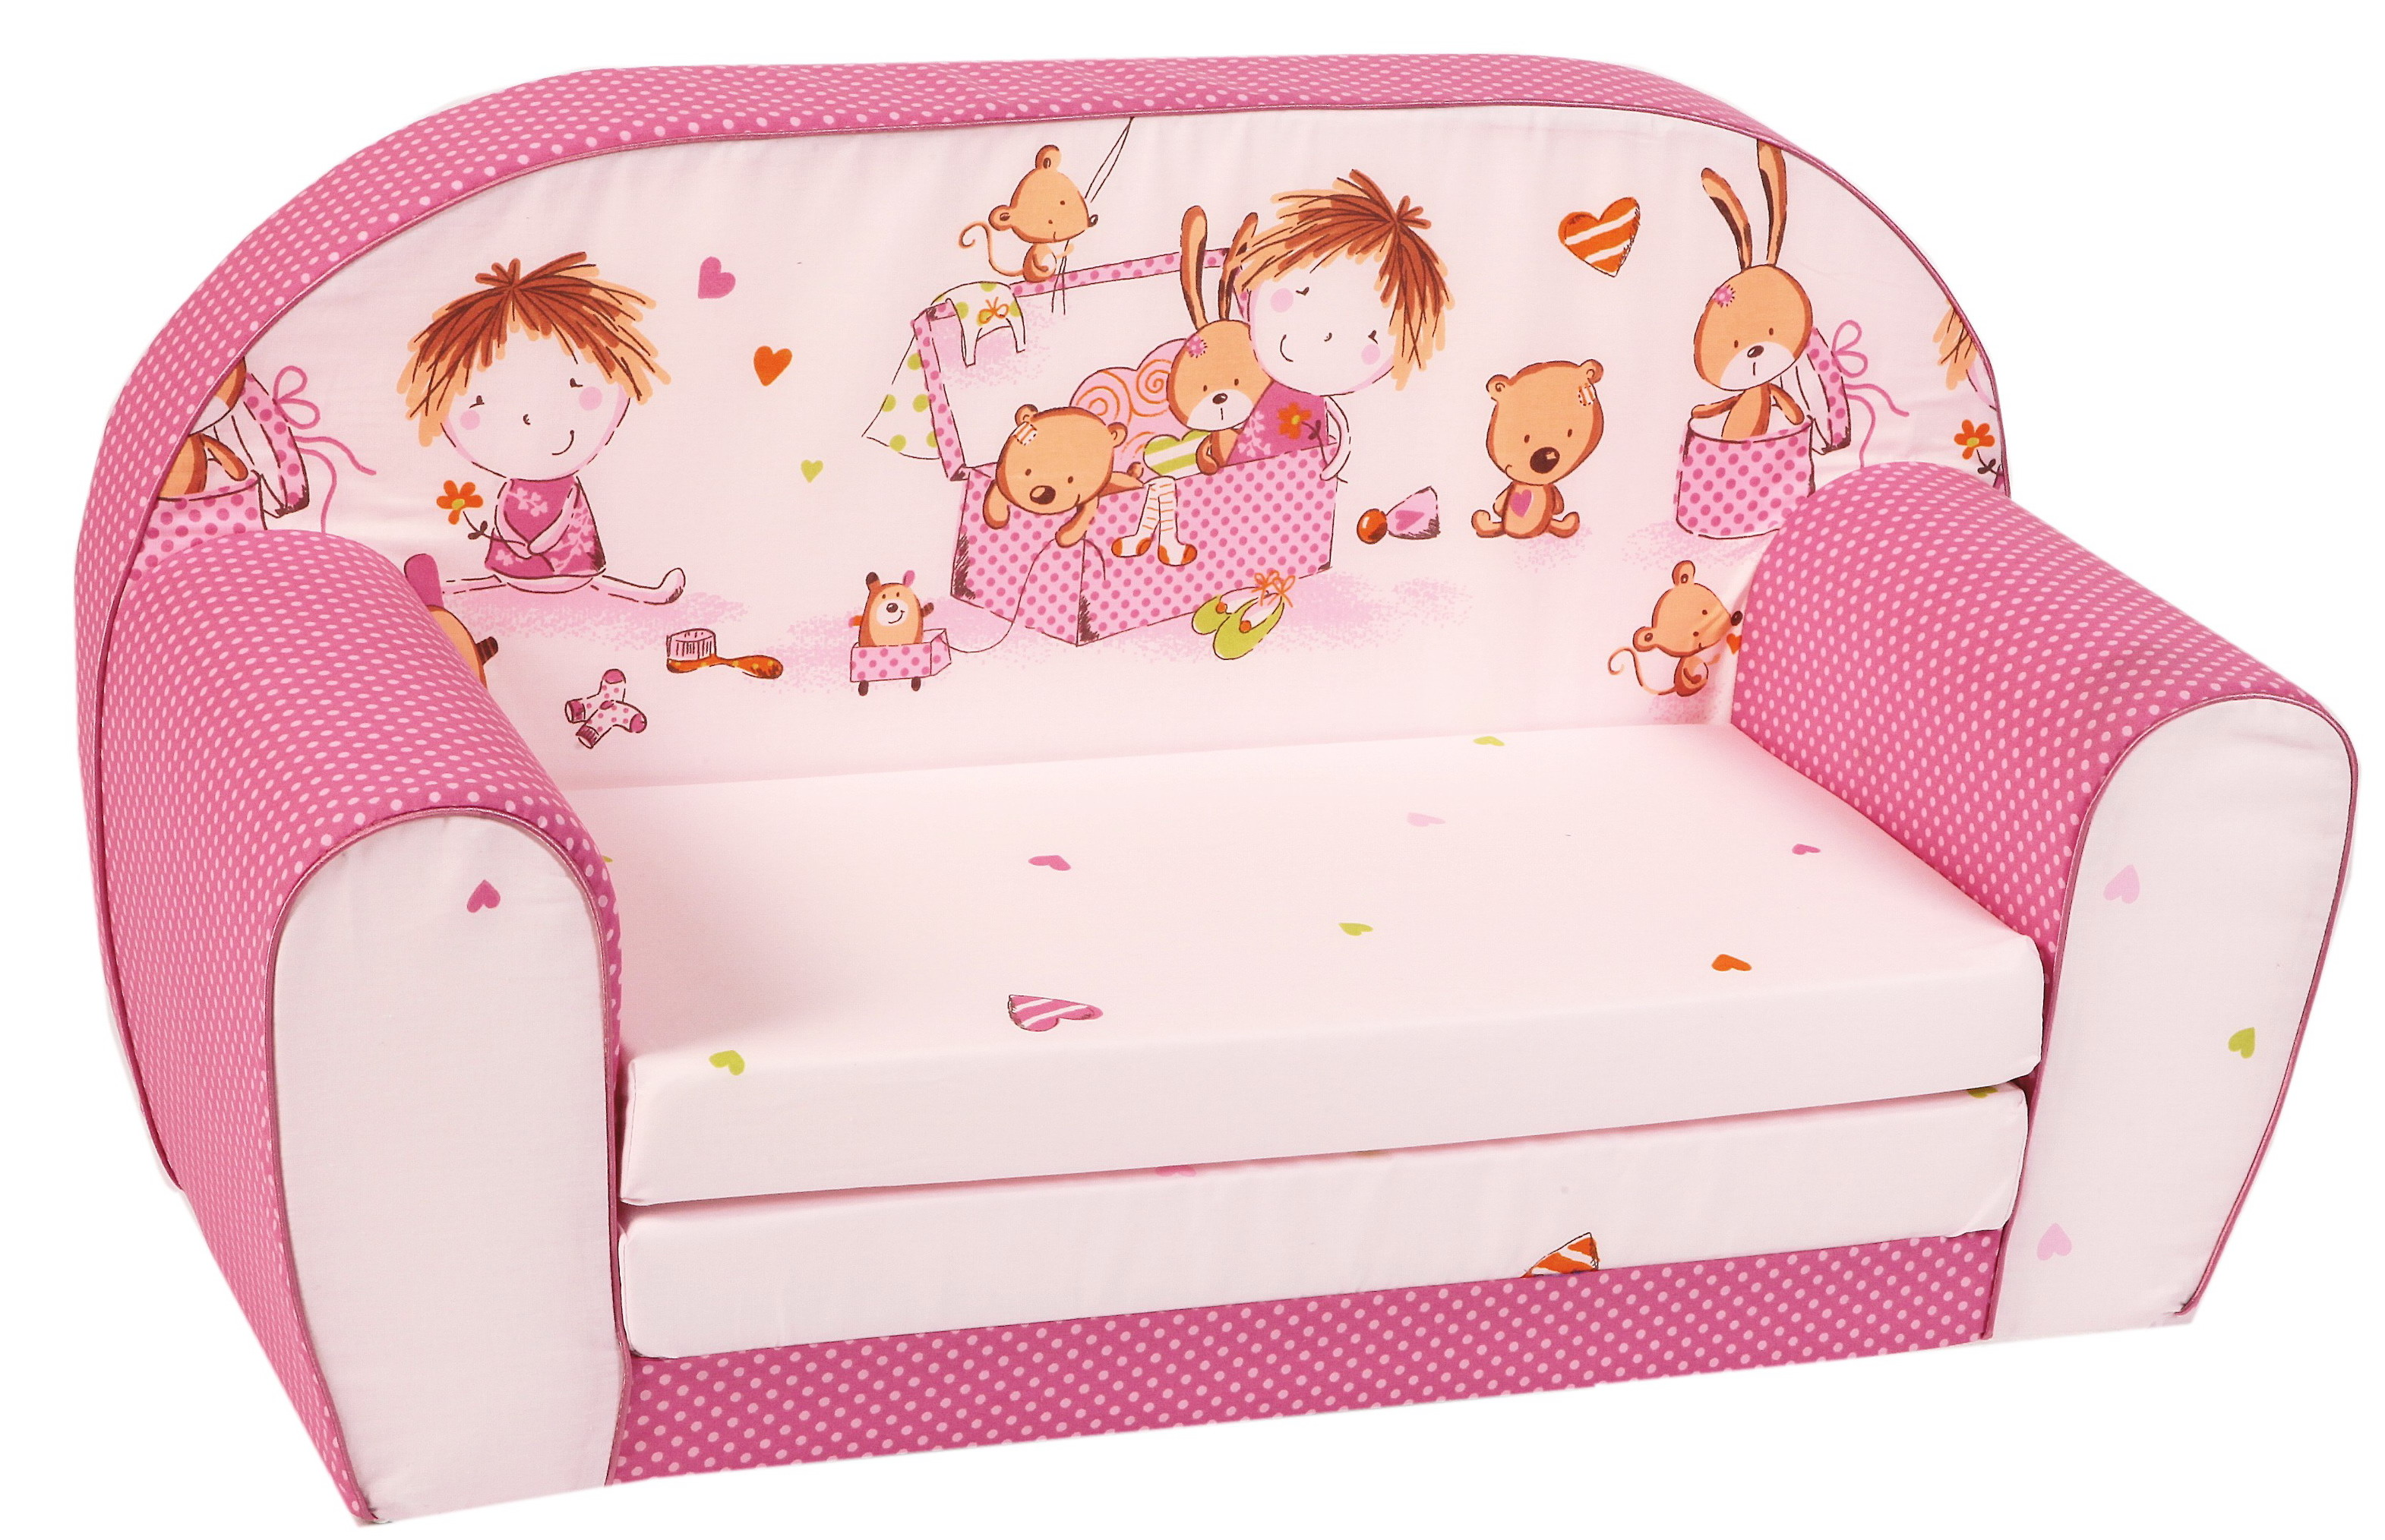 mini sofas para ninos black and gold sofa pillows knorr baby gmbh kinder schlafsofa quotspielzimmer pink